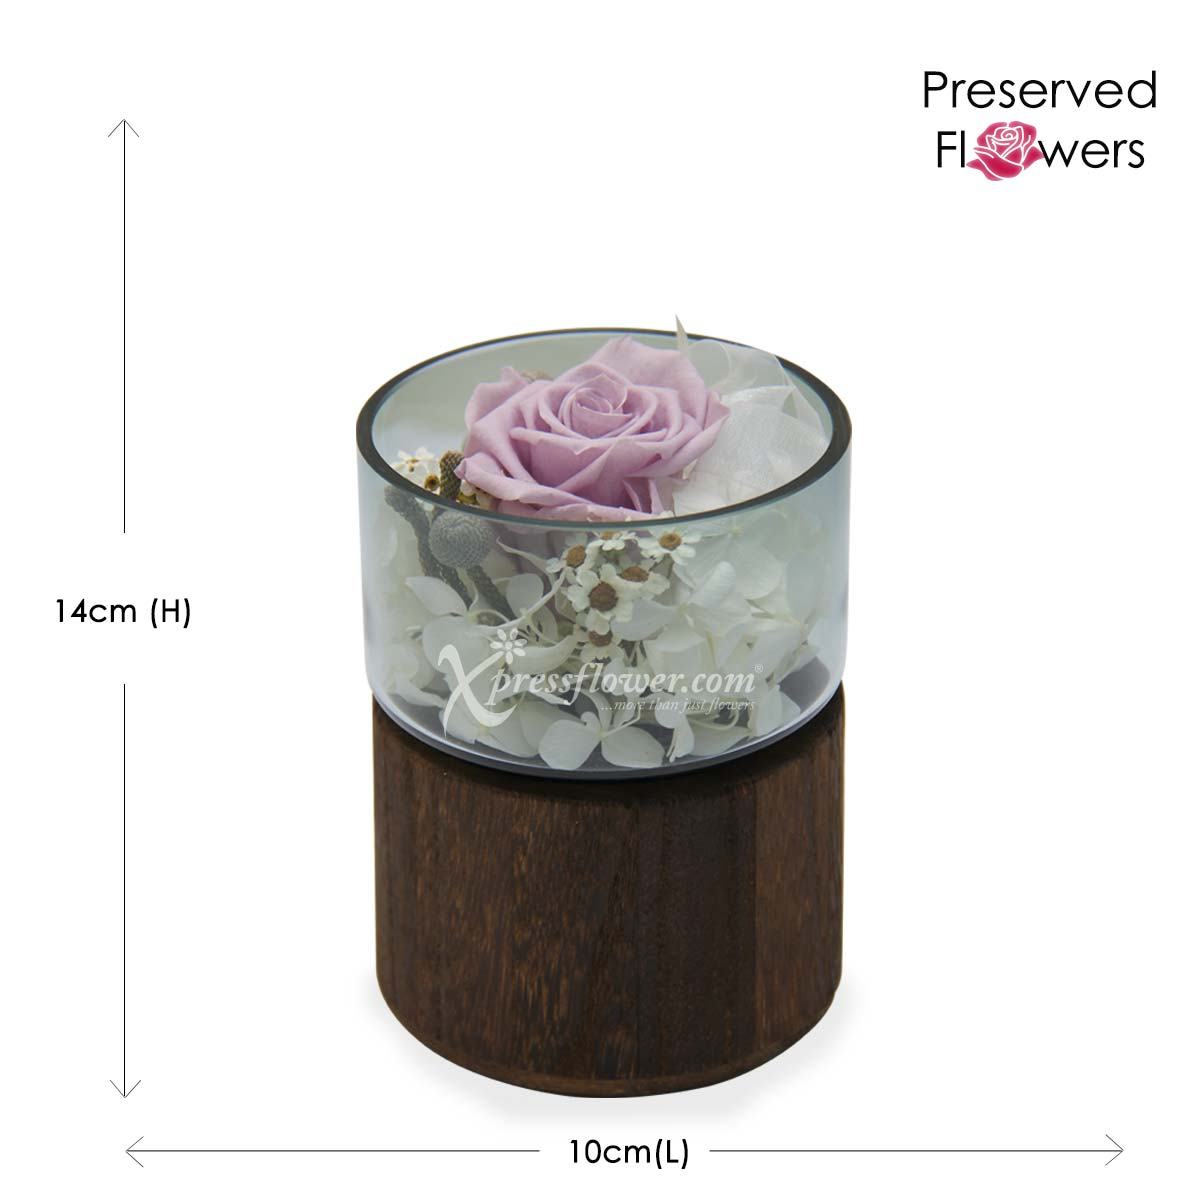 PR2113_Yam Allure (Mixed Dried & Preserved Flowers)_C